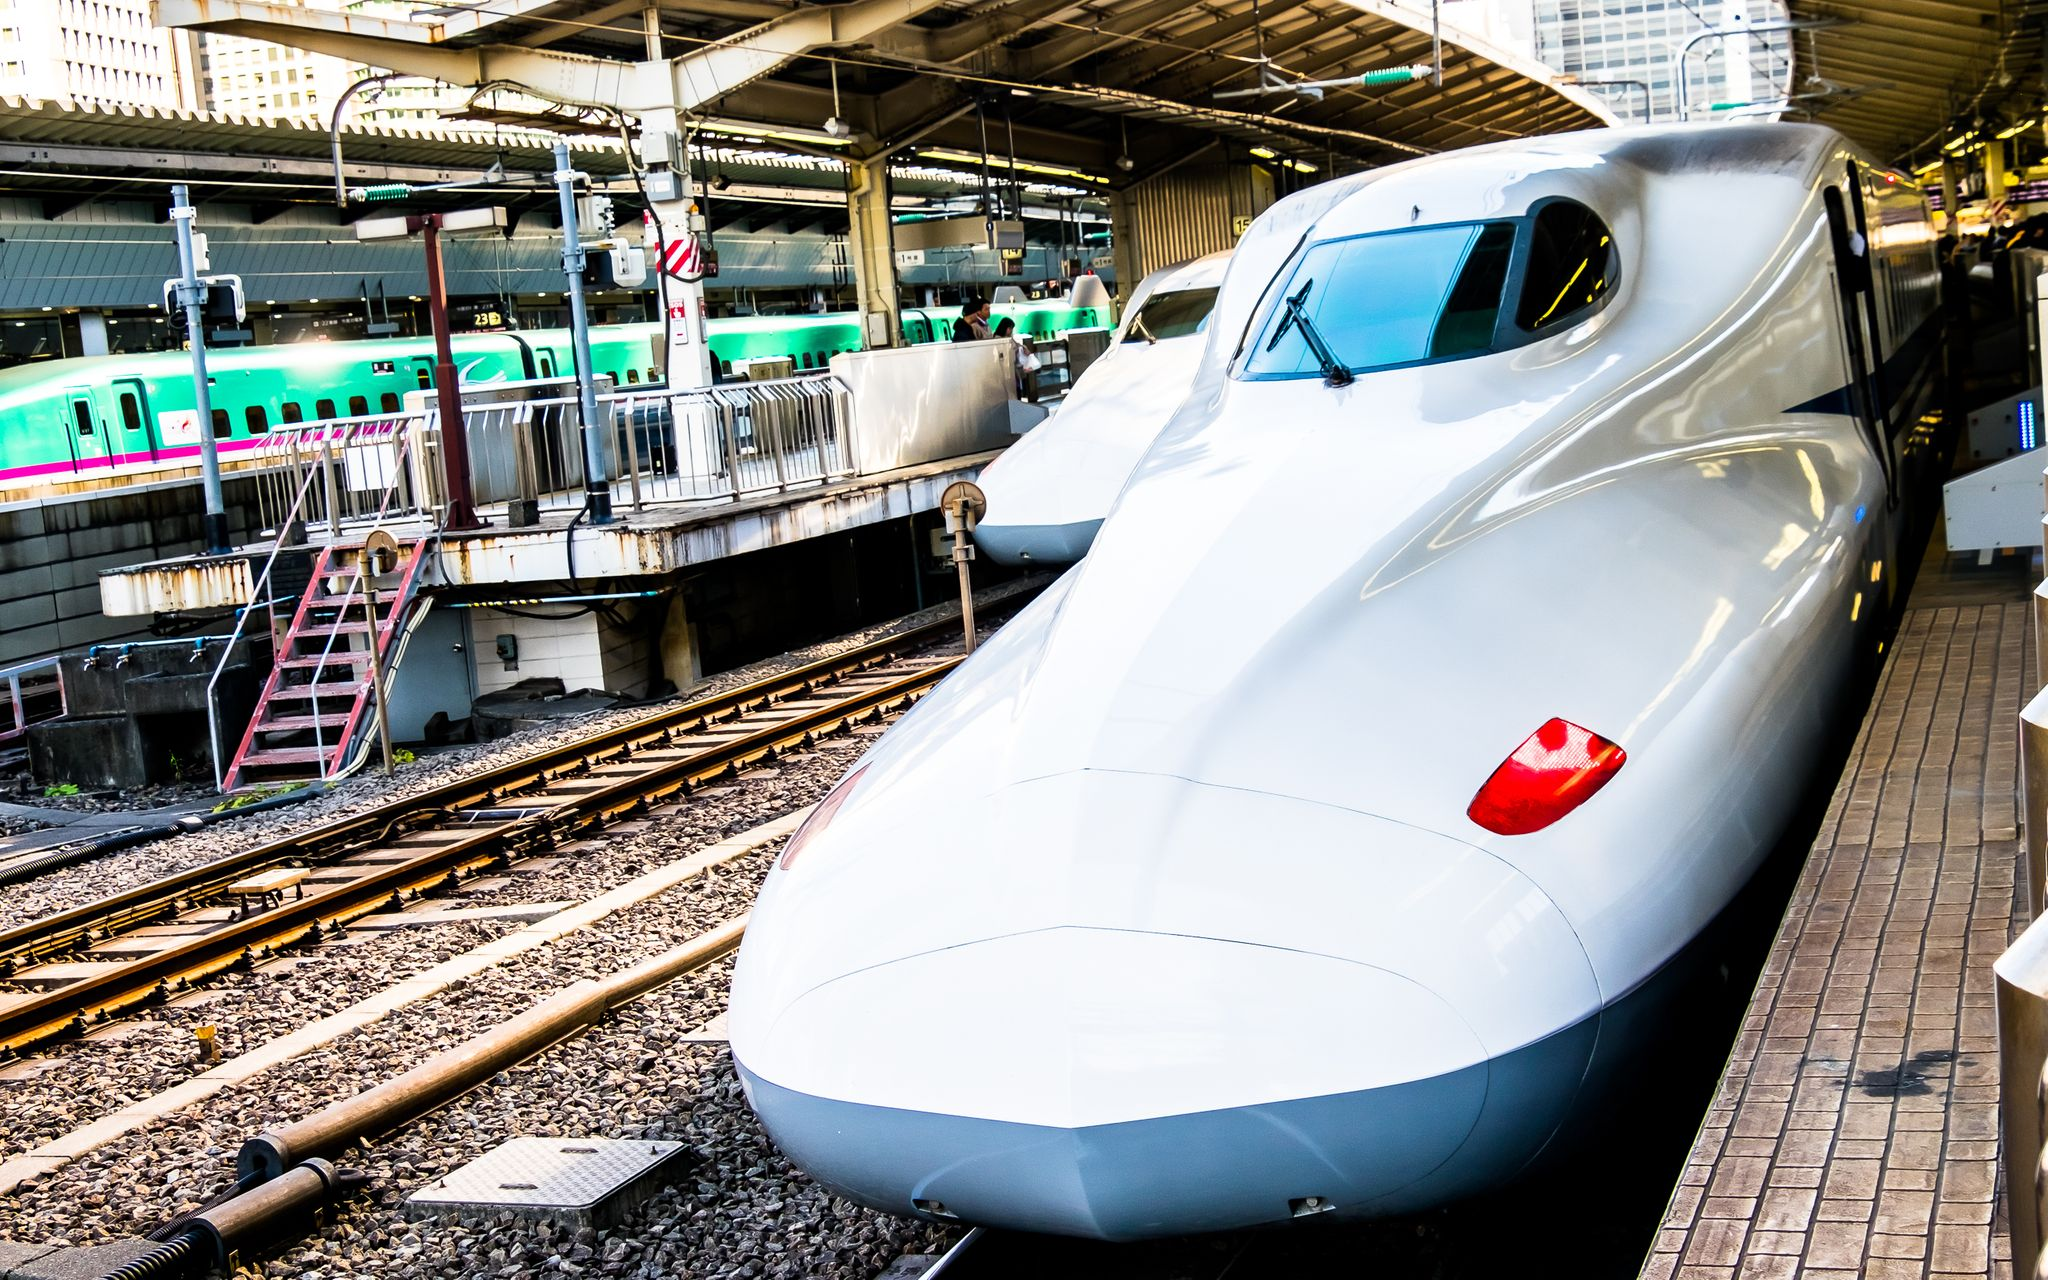 Shinkansen, Japan's high speed bullet train